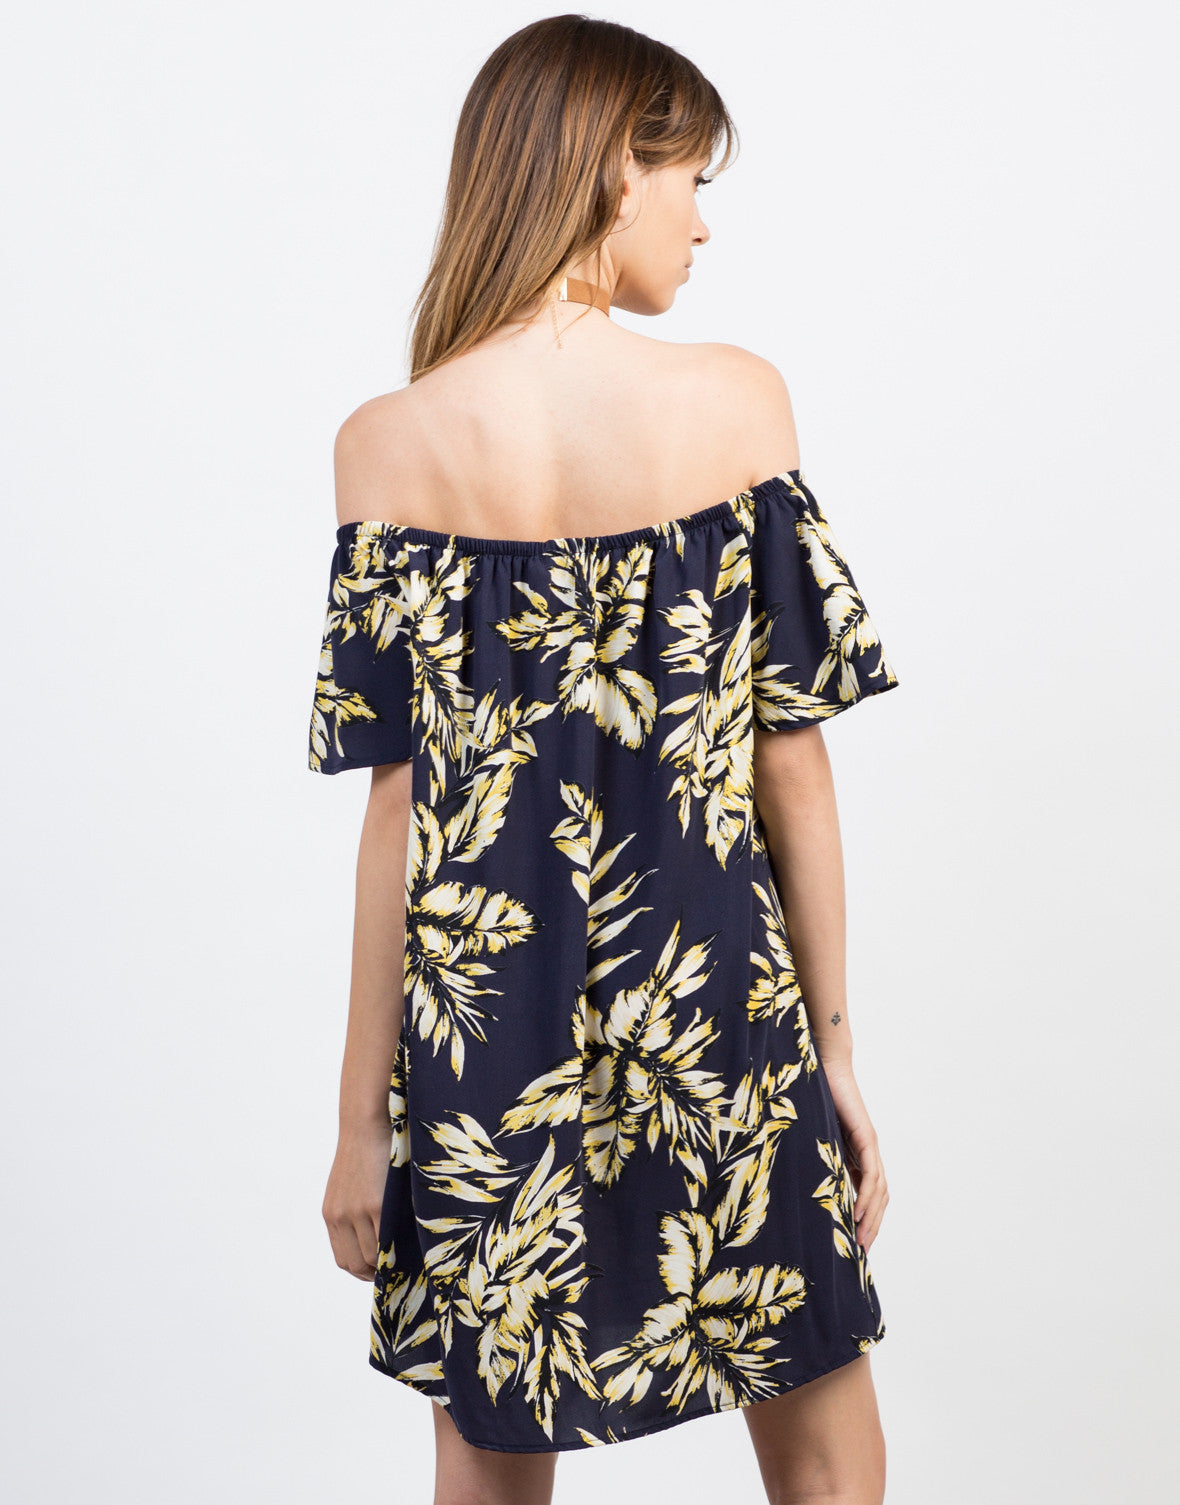 Back View of Tropical Vacay Dress